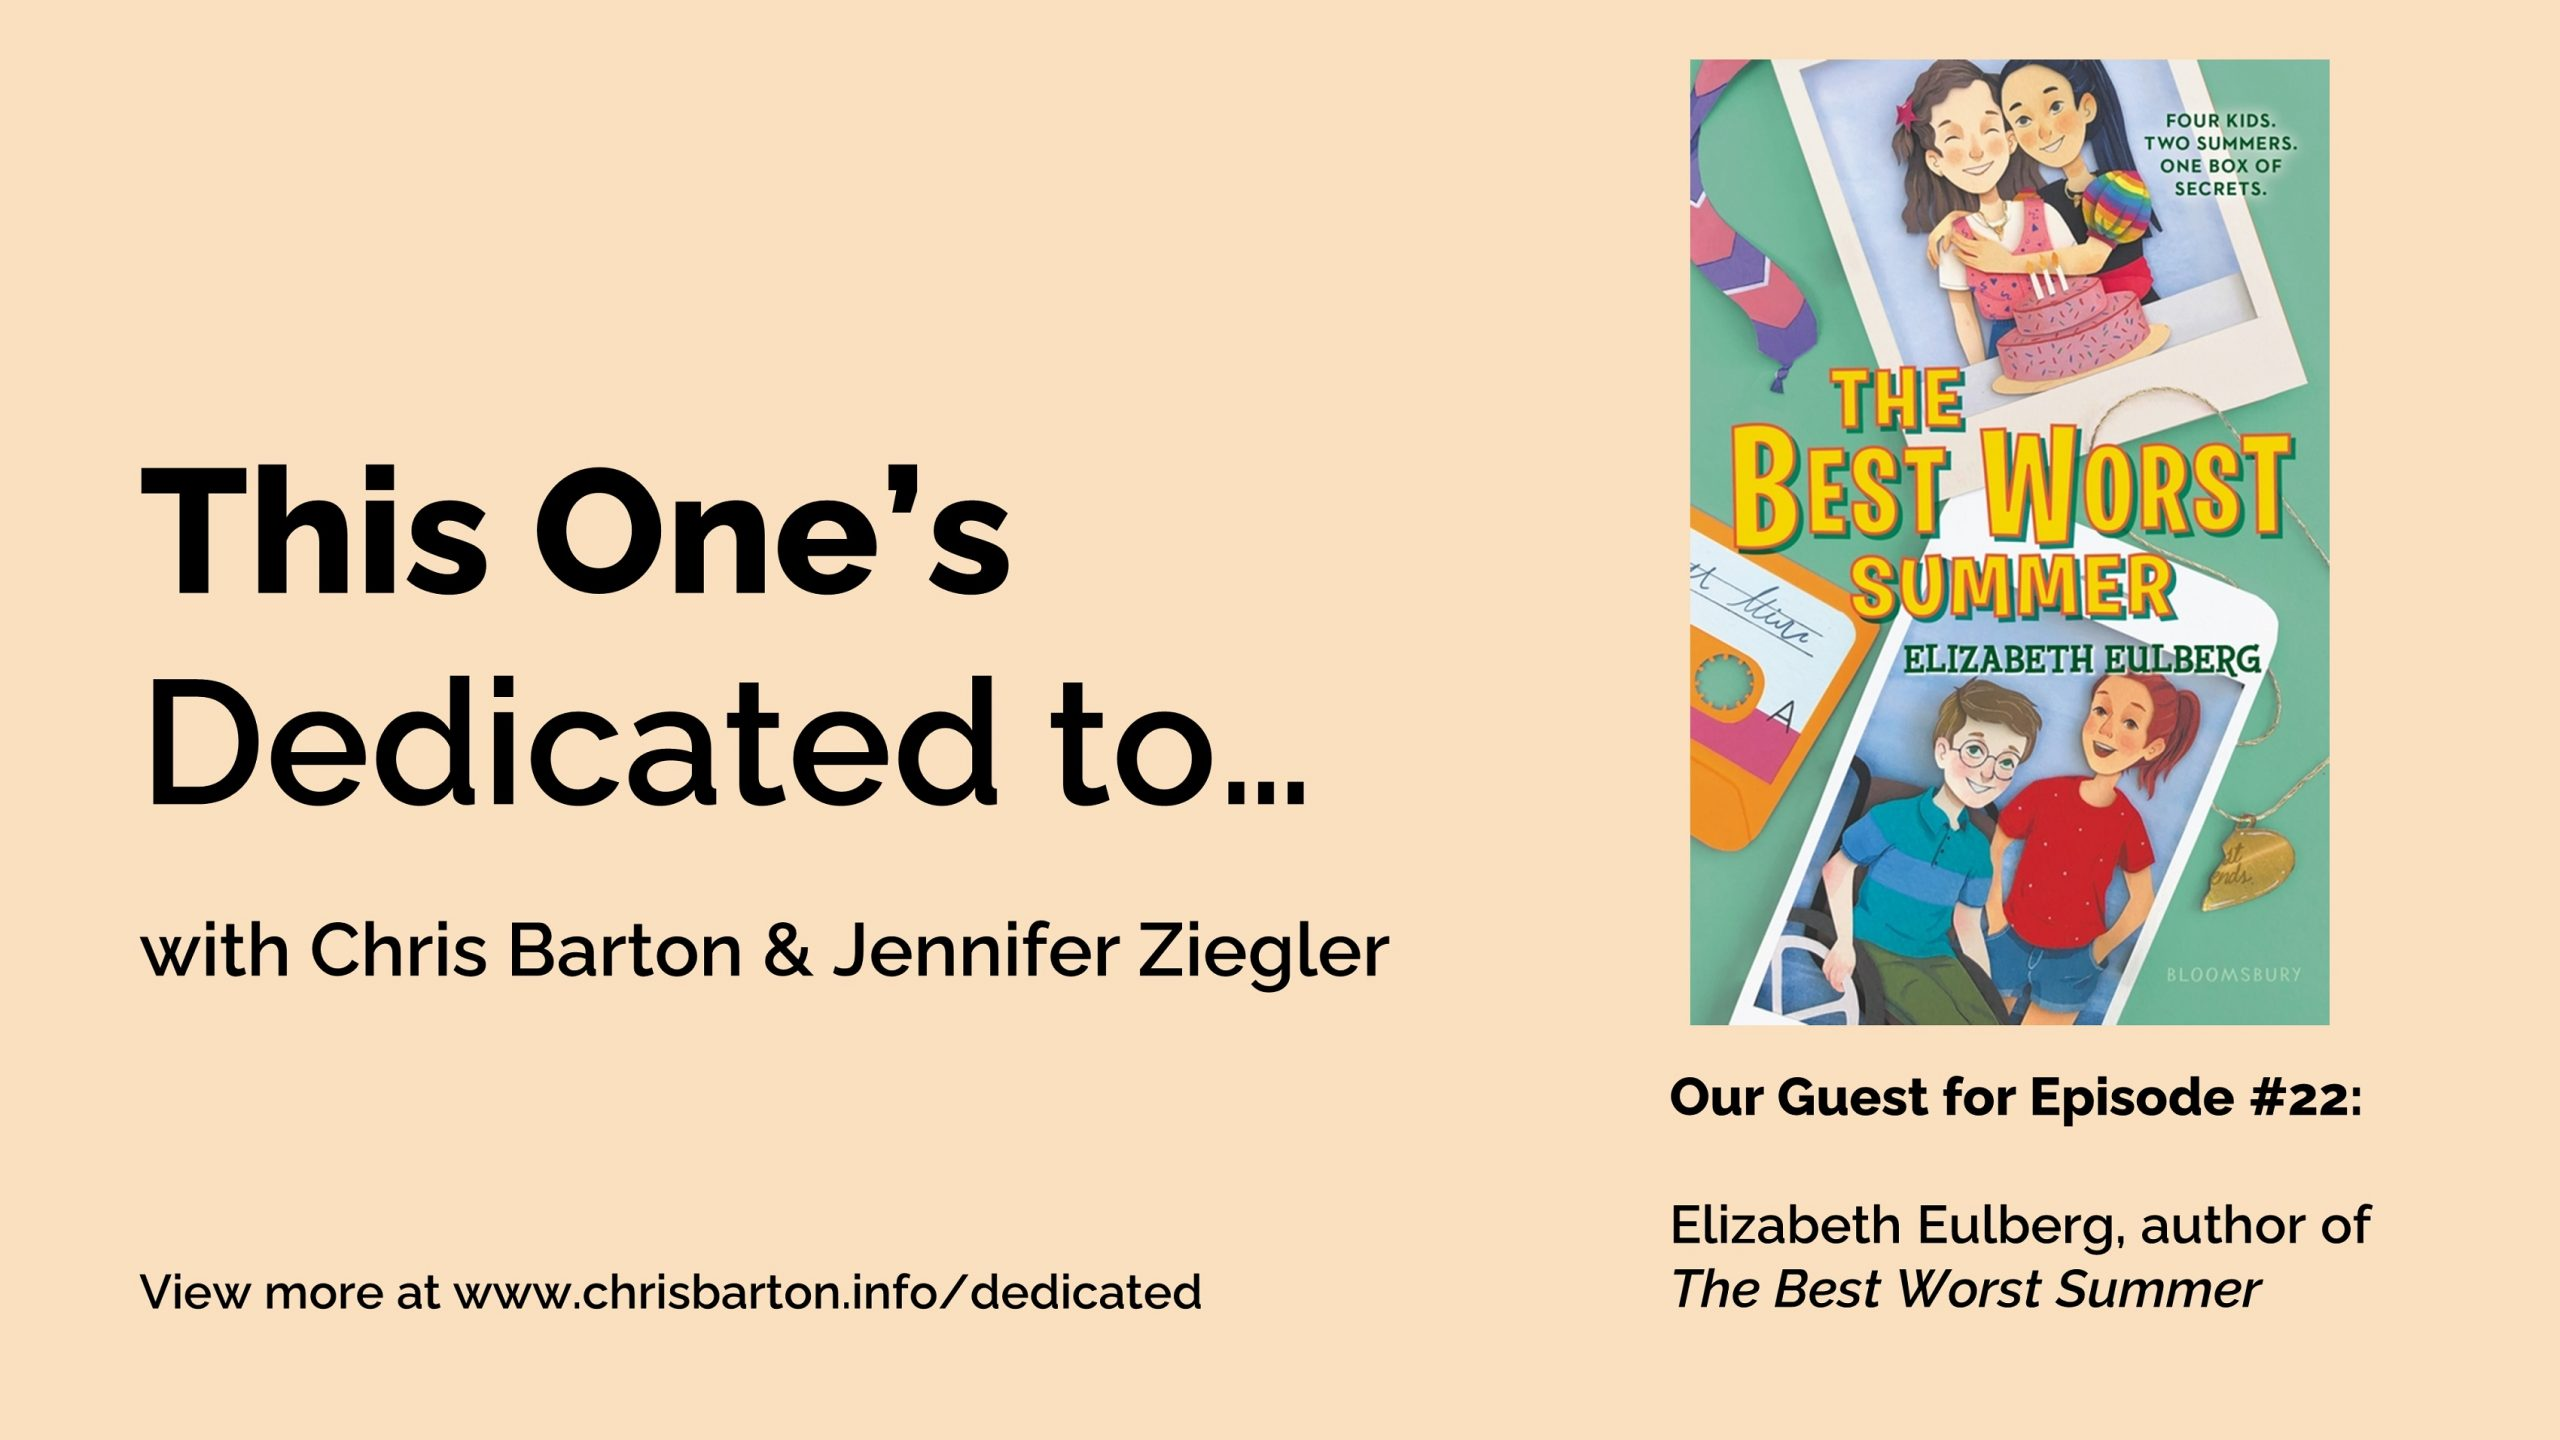 This One's Dedicated to… (#22): Elizabeth Eulberg, The Best Worst Summer